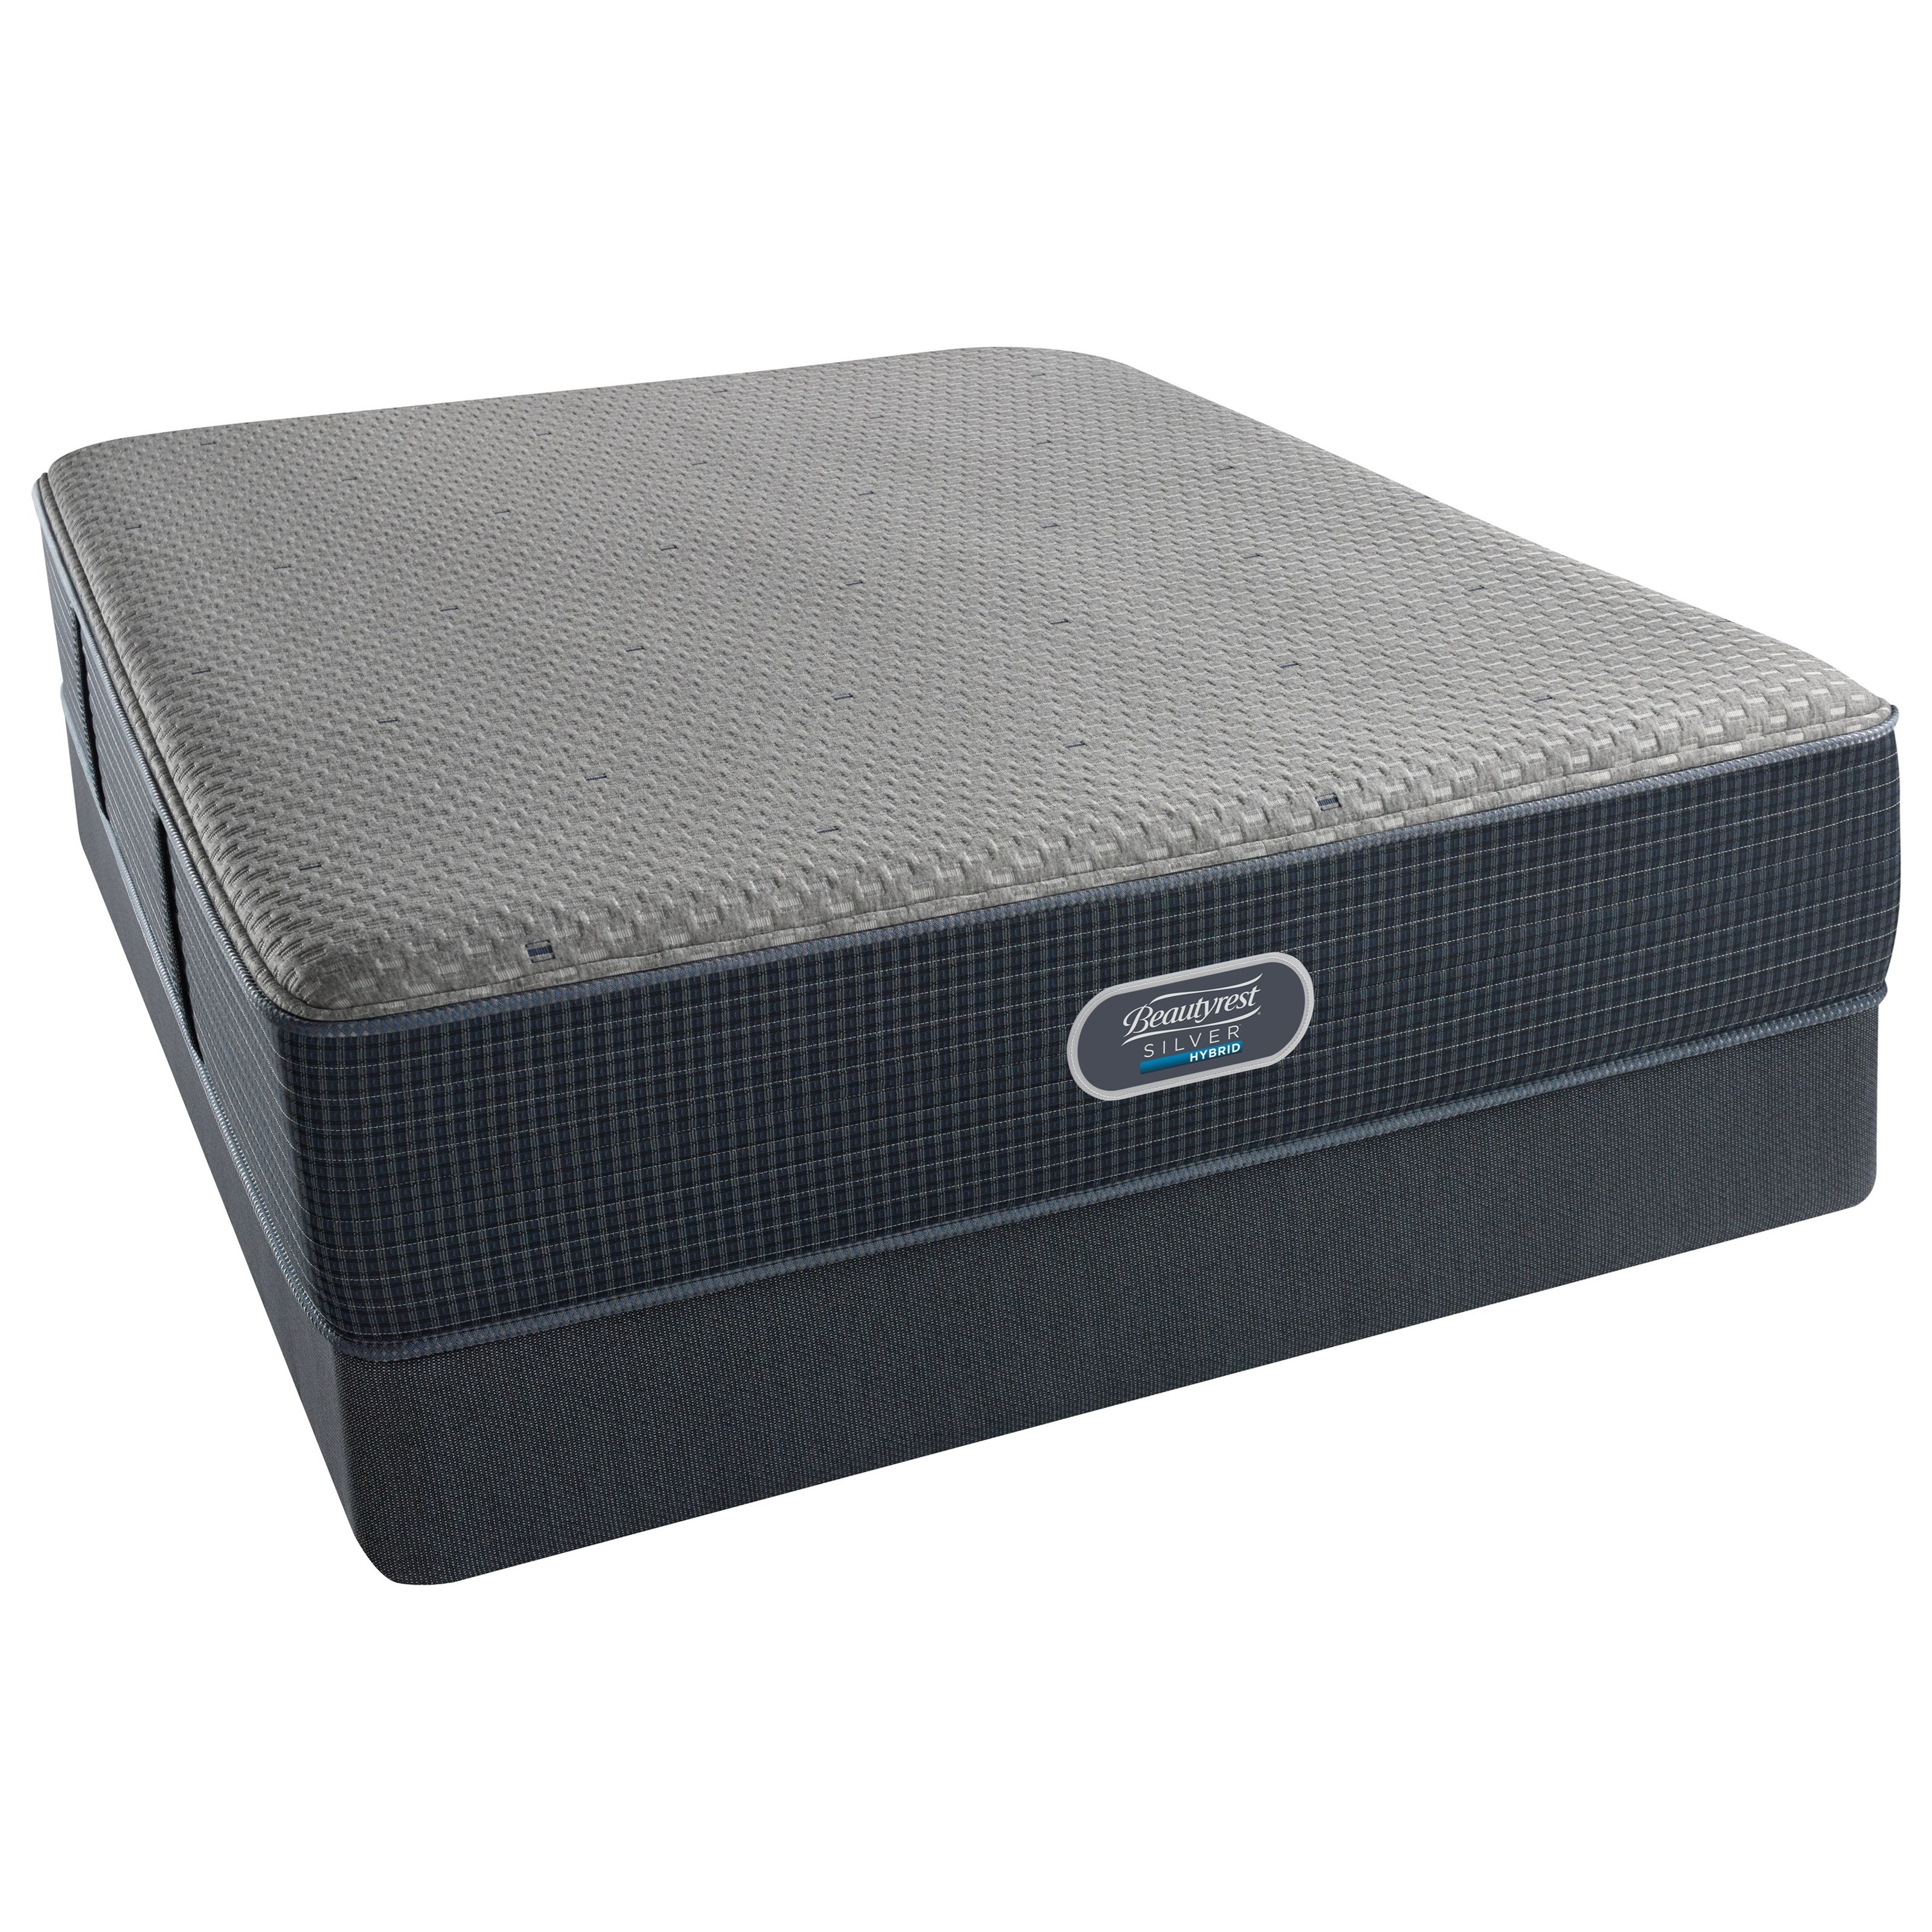 Beautyrest Silver Hybrid Austin Reef Plush Cal King Low Profile Set - Item Number: 700601001-1070+2x700150470-6070